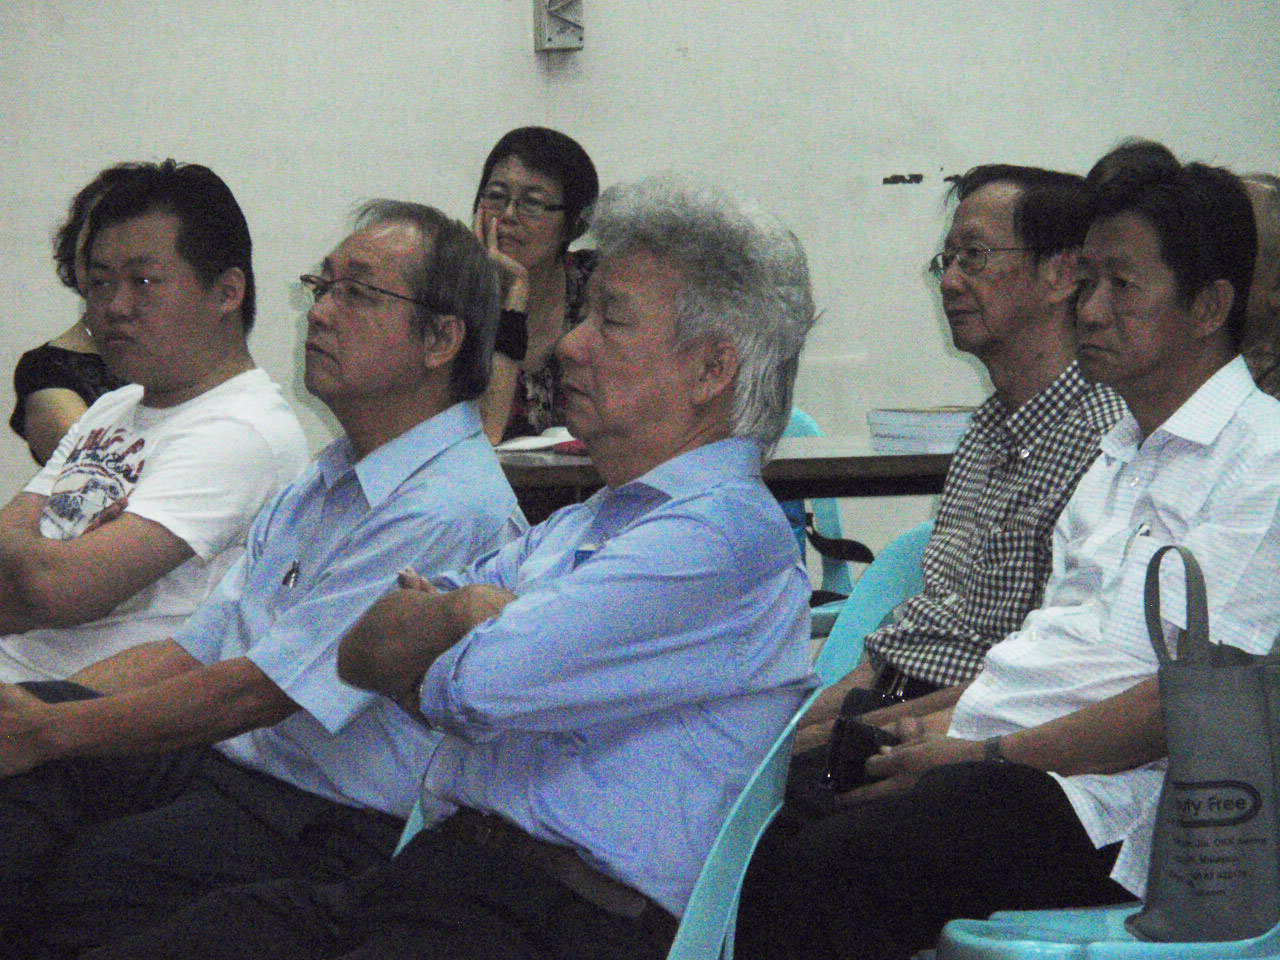 A section of the participants listening intently to the speaker.